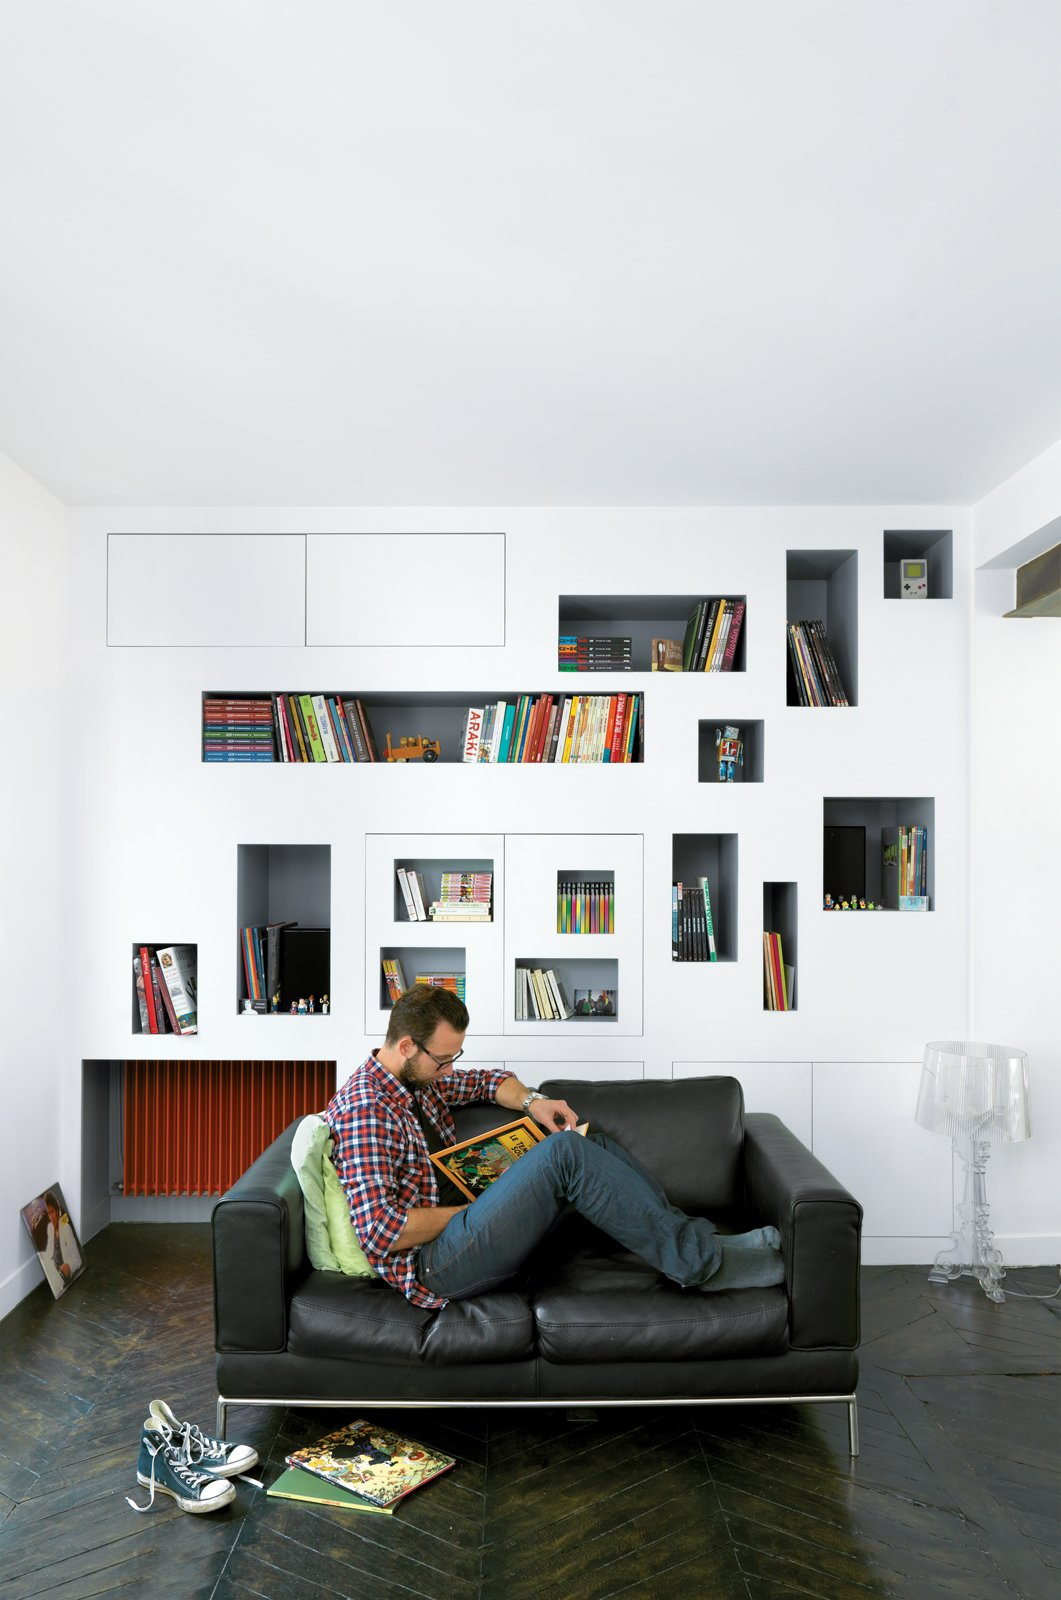 Articles about shelf life on Dwell.com